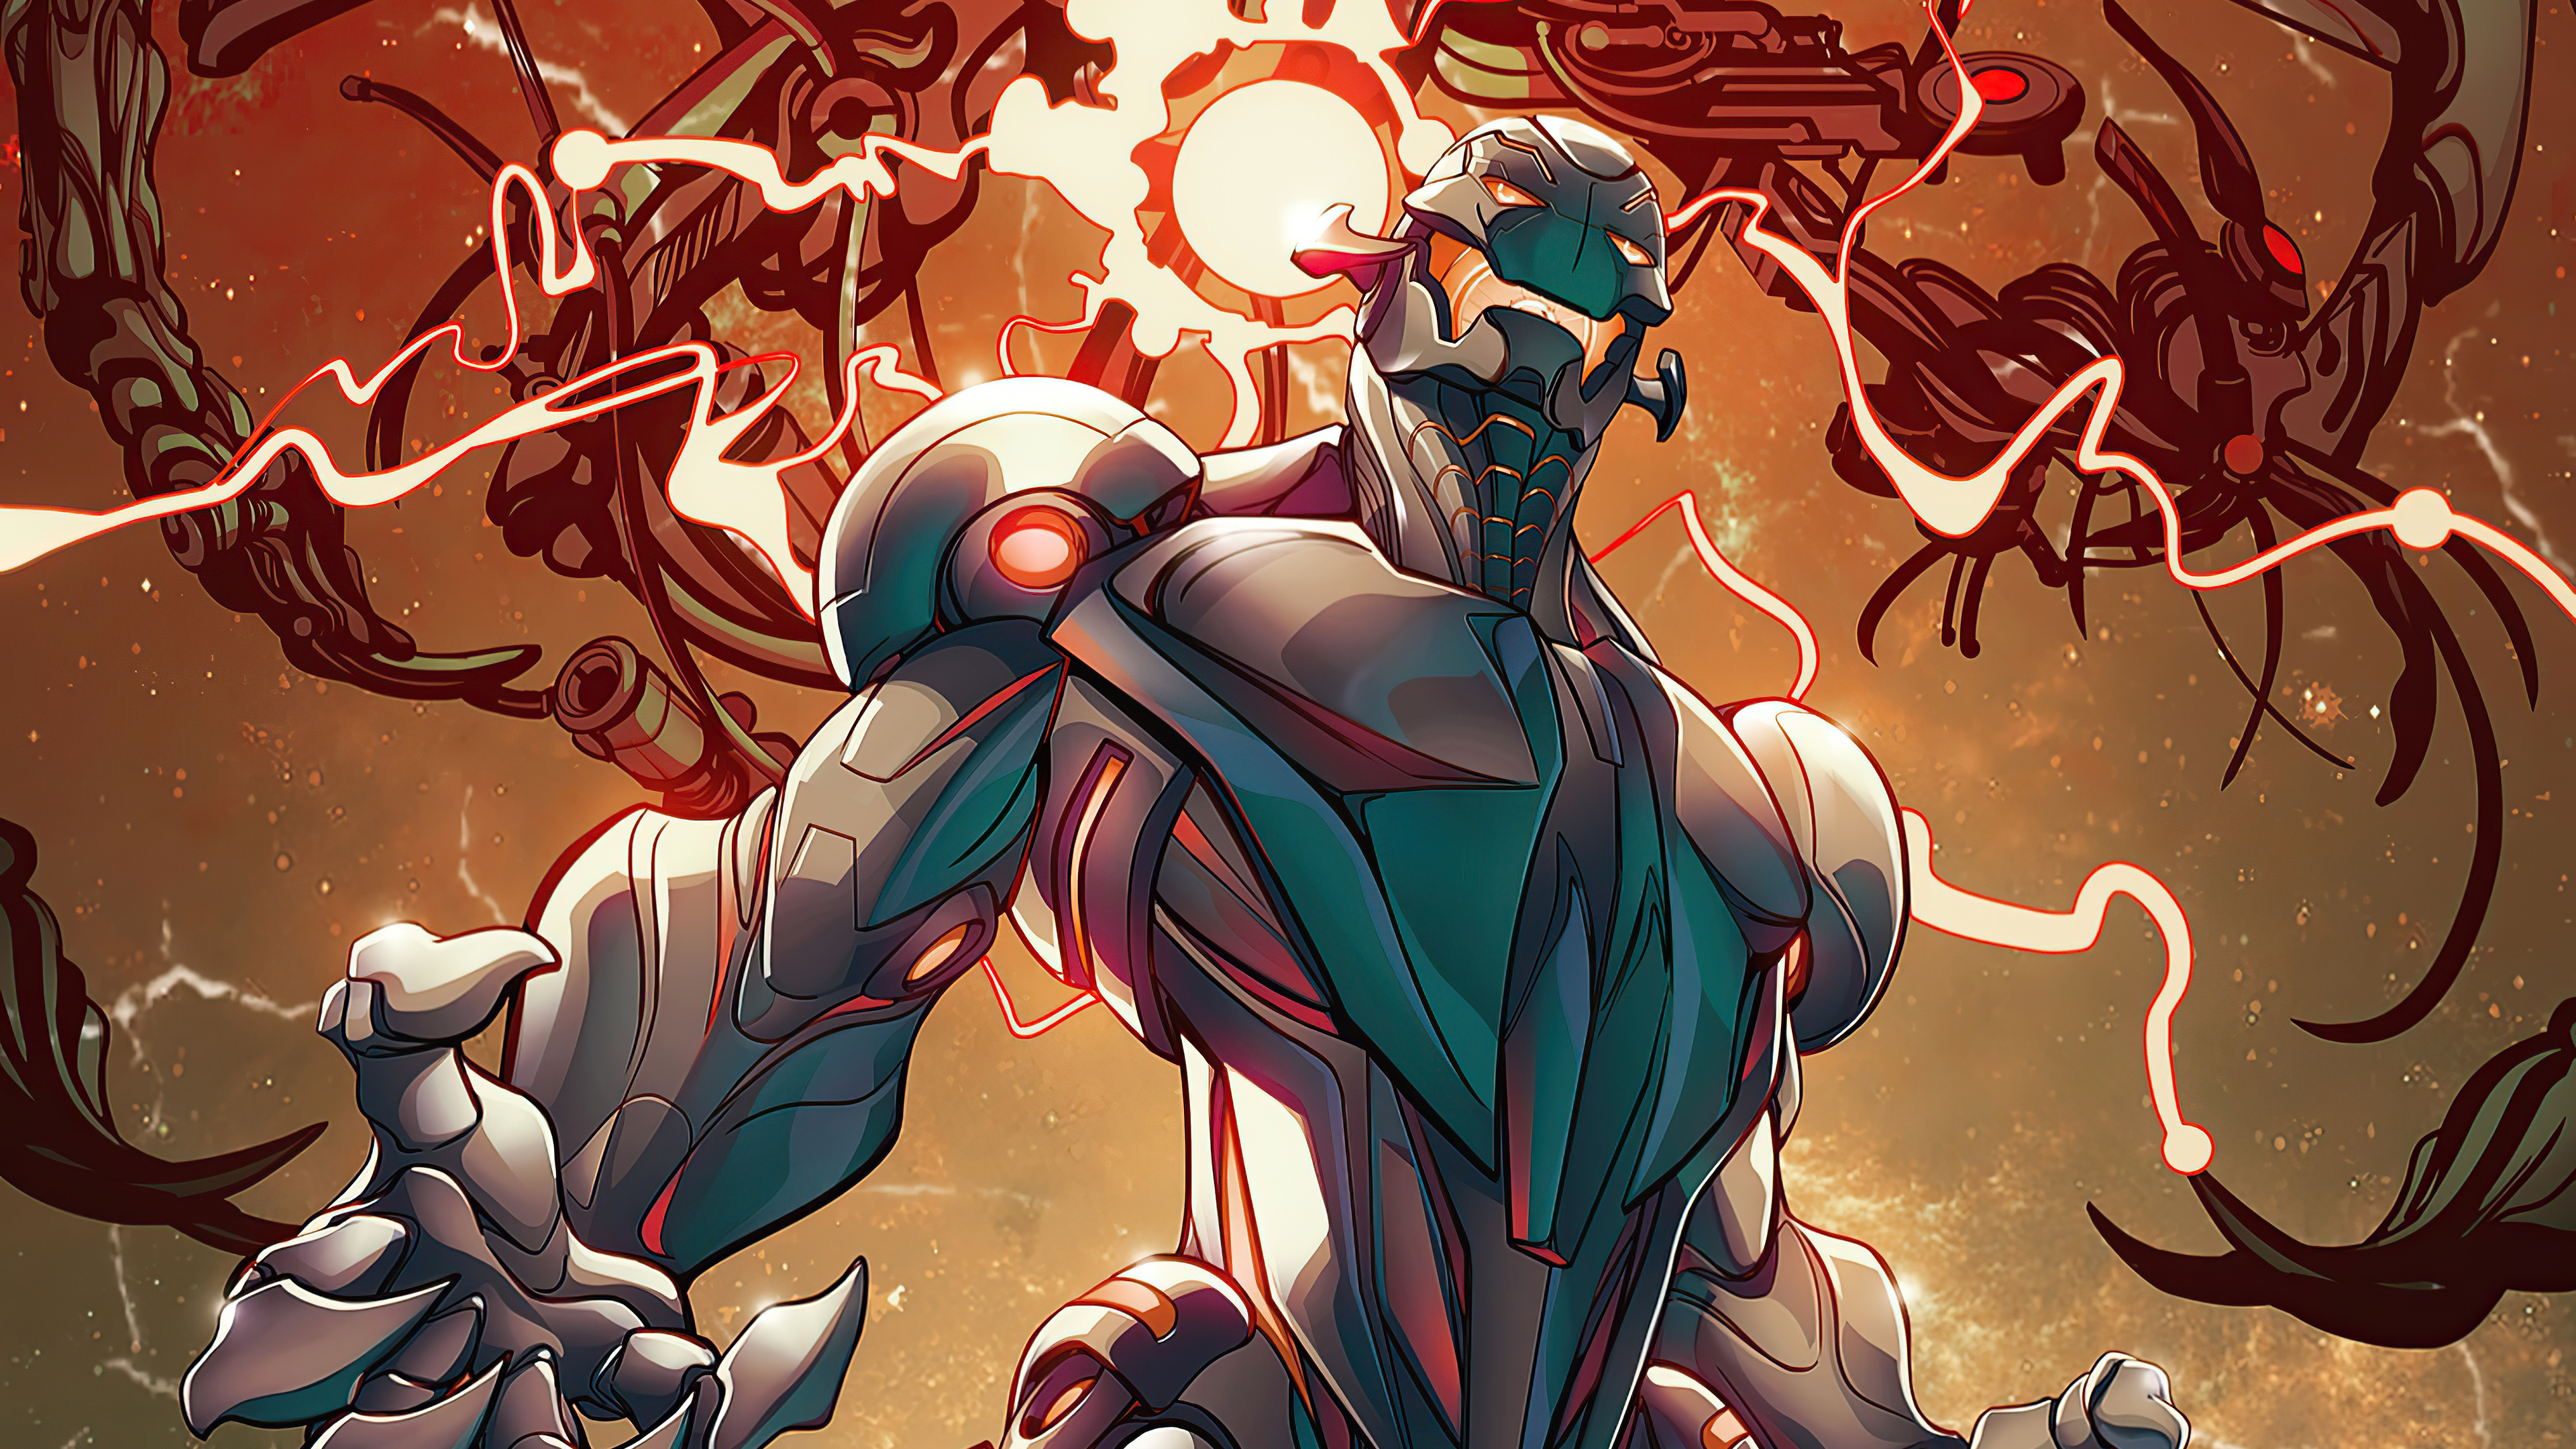 In the Eighth episode of the series, Ultron is shown to have captured all the infinity stones. Subsequently, he becomes super powerful and wipes out life in his reality. Due to his ability, he is able to see the other worlds and the Watcher. Ultron seeks to put an end to life in the multiverse. The Watcher contacts Strange to prevent this; who is trapped in his own reality.